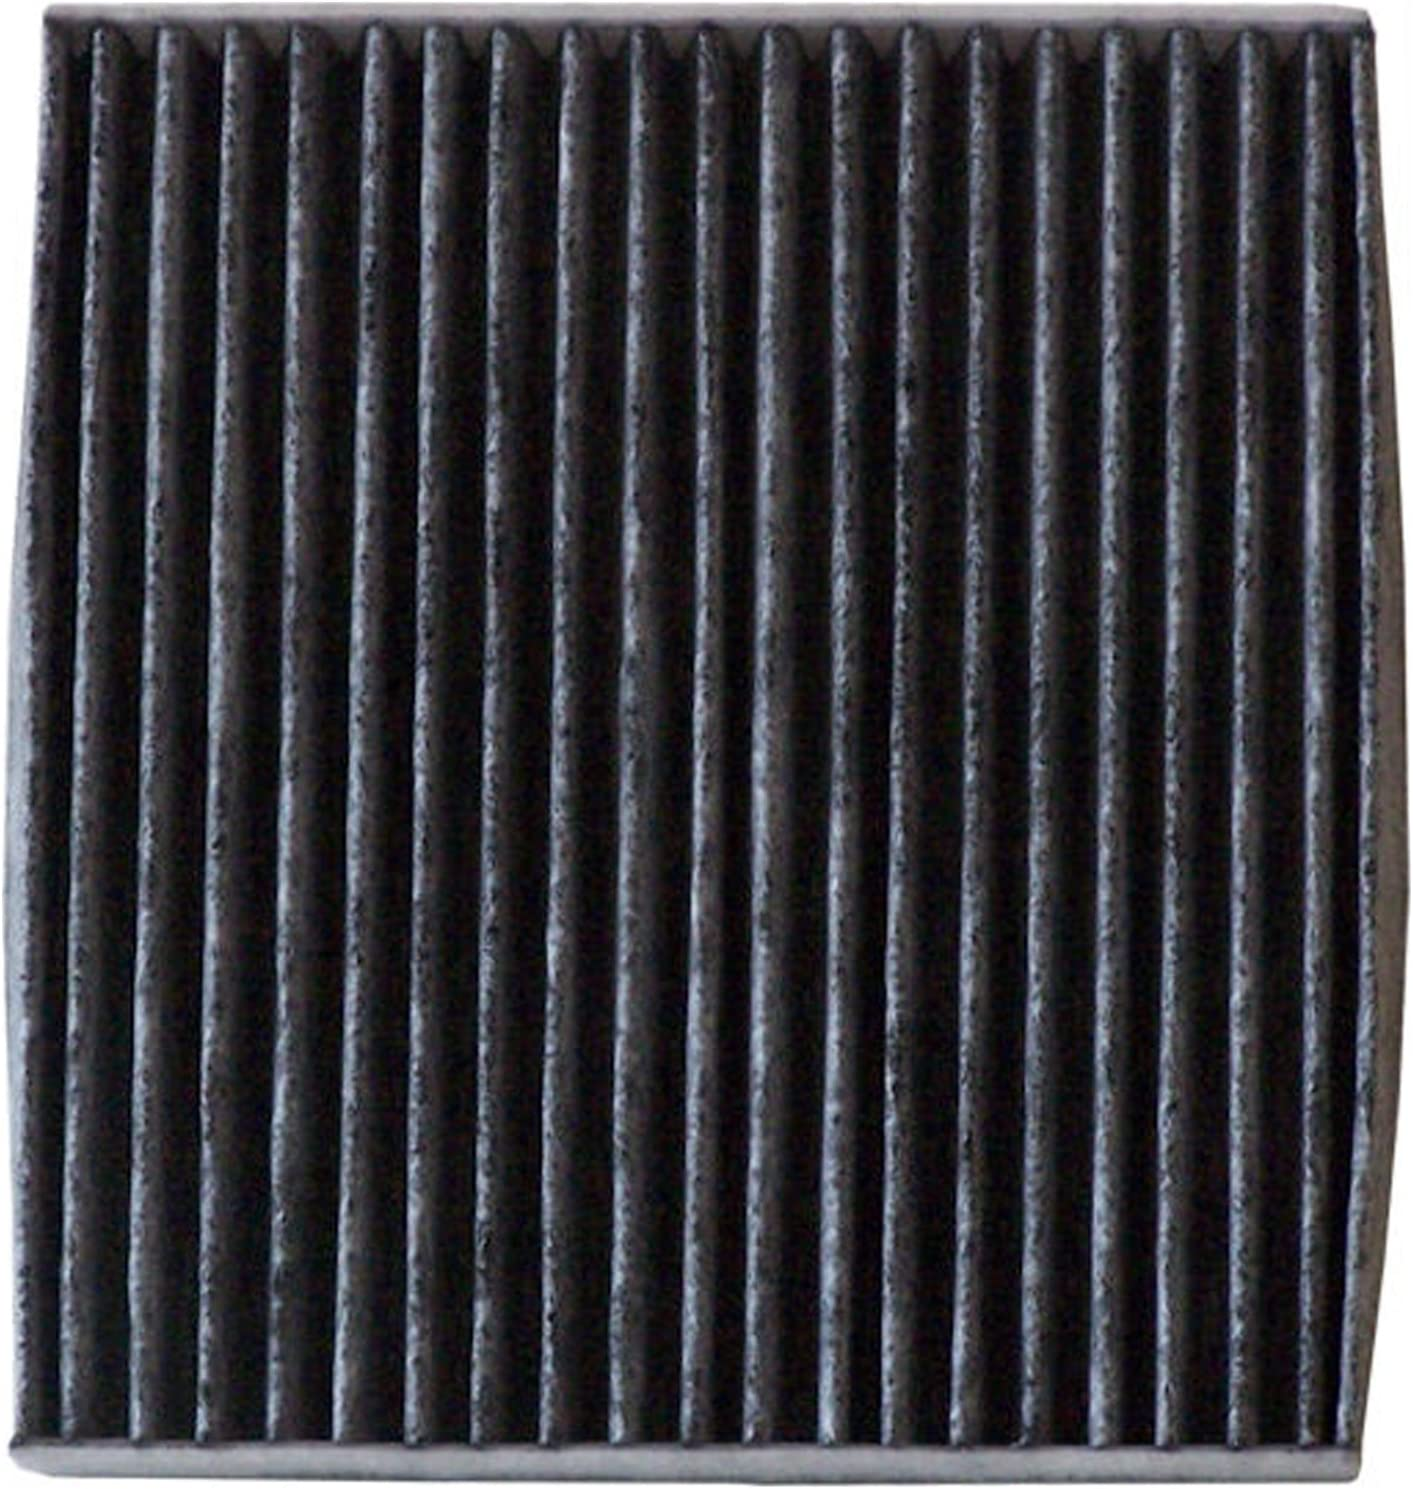 Luber-finer CAF1816C-6PK safety Oakland Mall Cabin Air Filter Pack 6